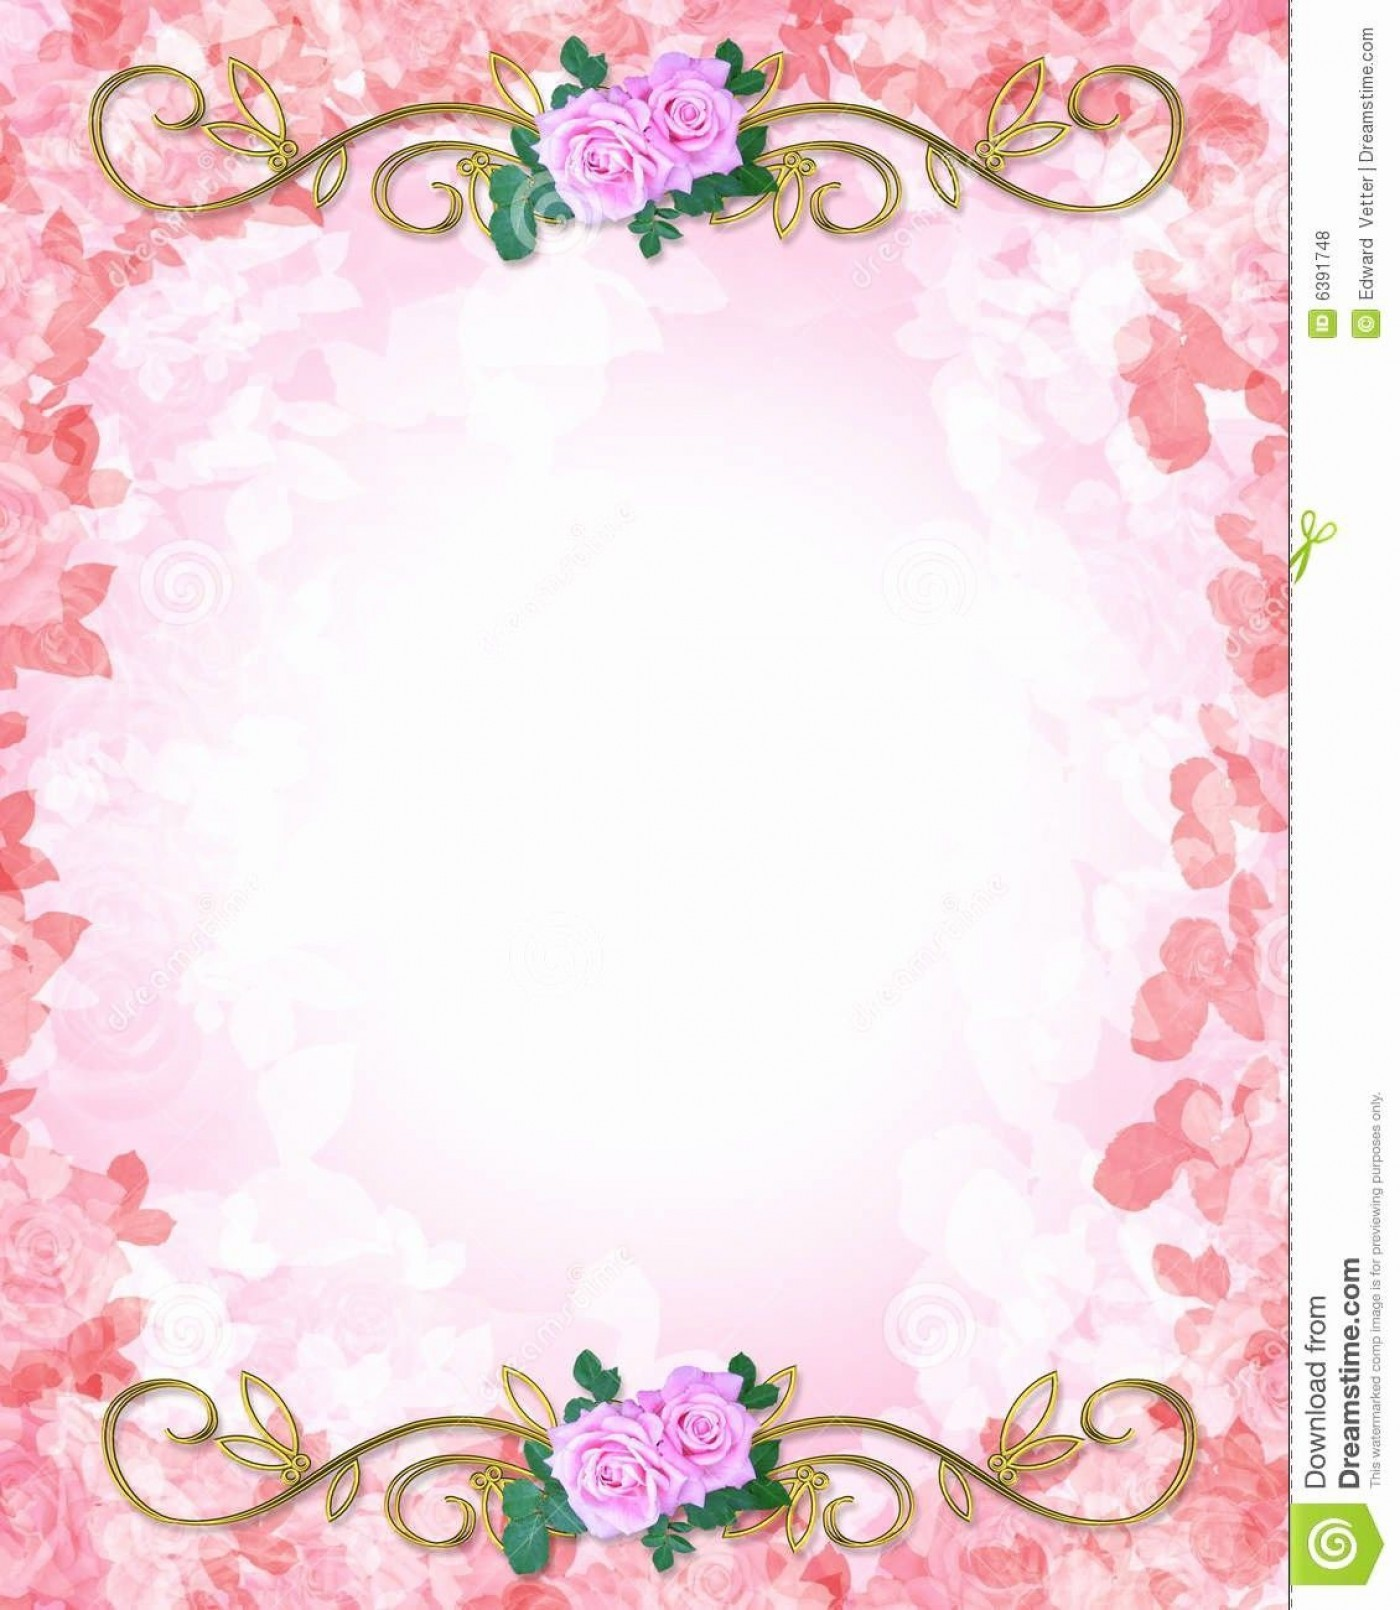 005 Fascinating Free Download Invitation Card Template Picture  Wedding Design Software For Pc Psd1400